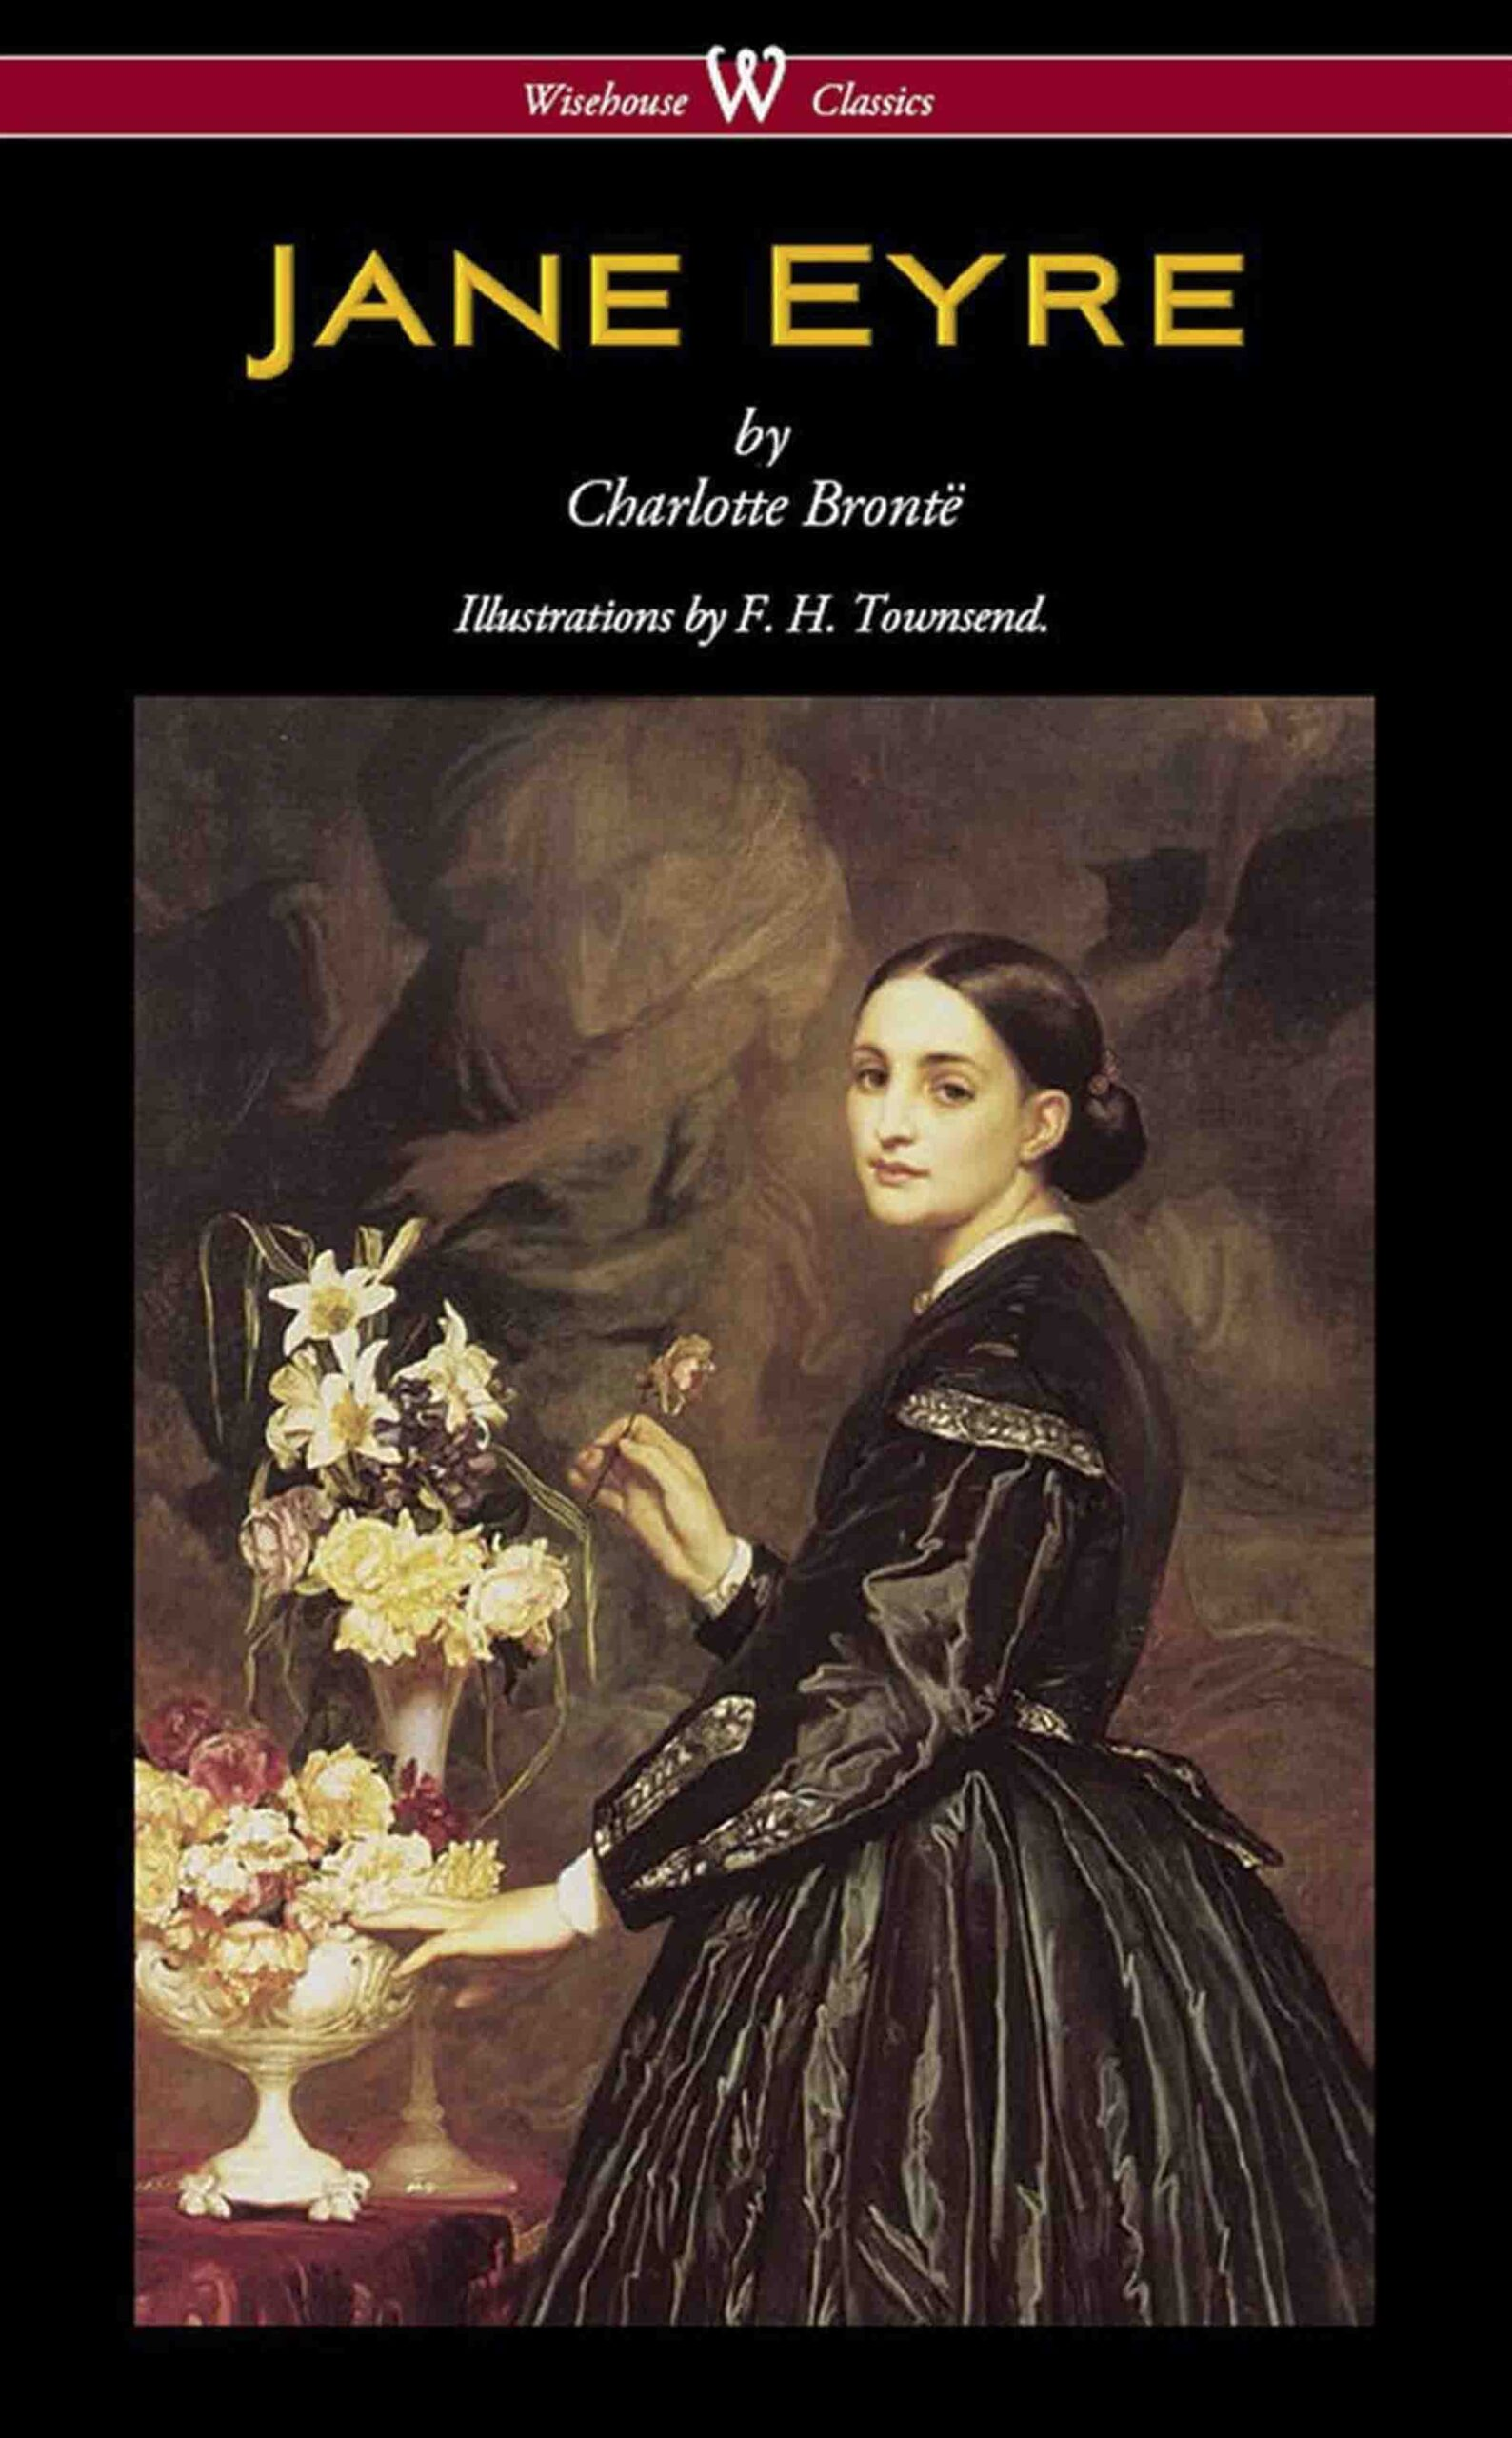 Jane Eyre (Wisehouse Classics Edition – With Illustrations by F. H. Townsend)